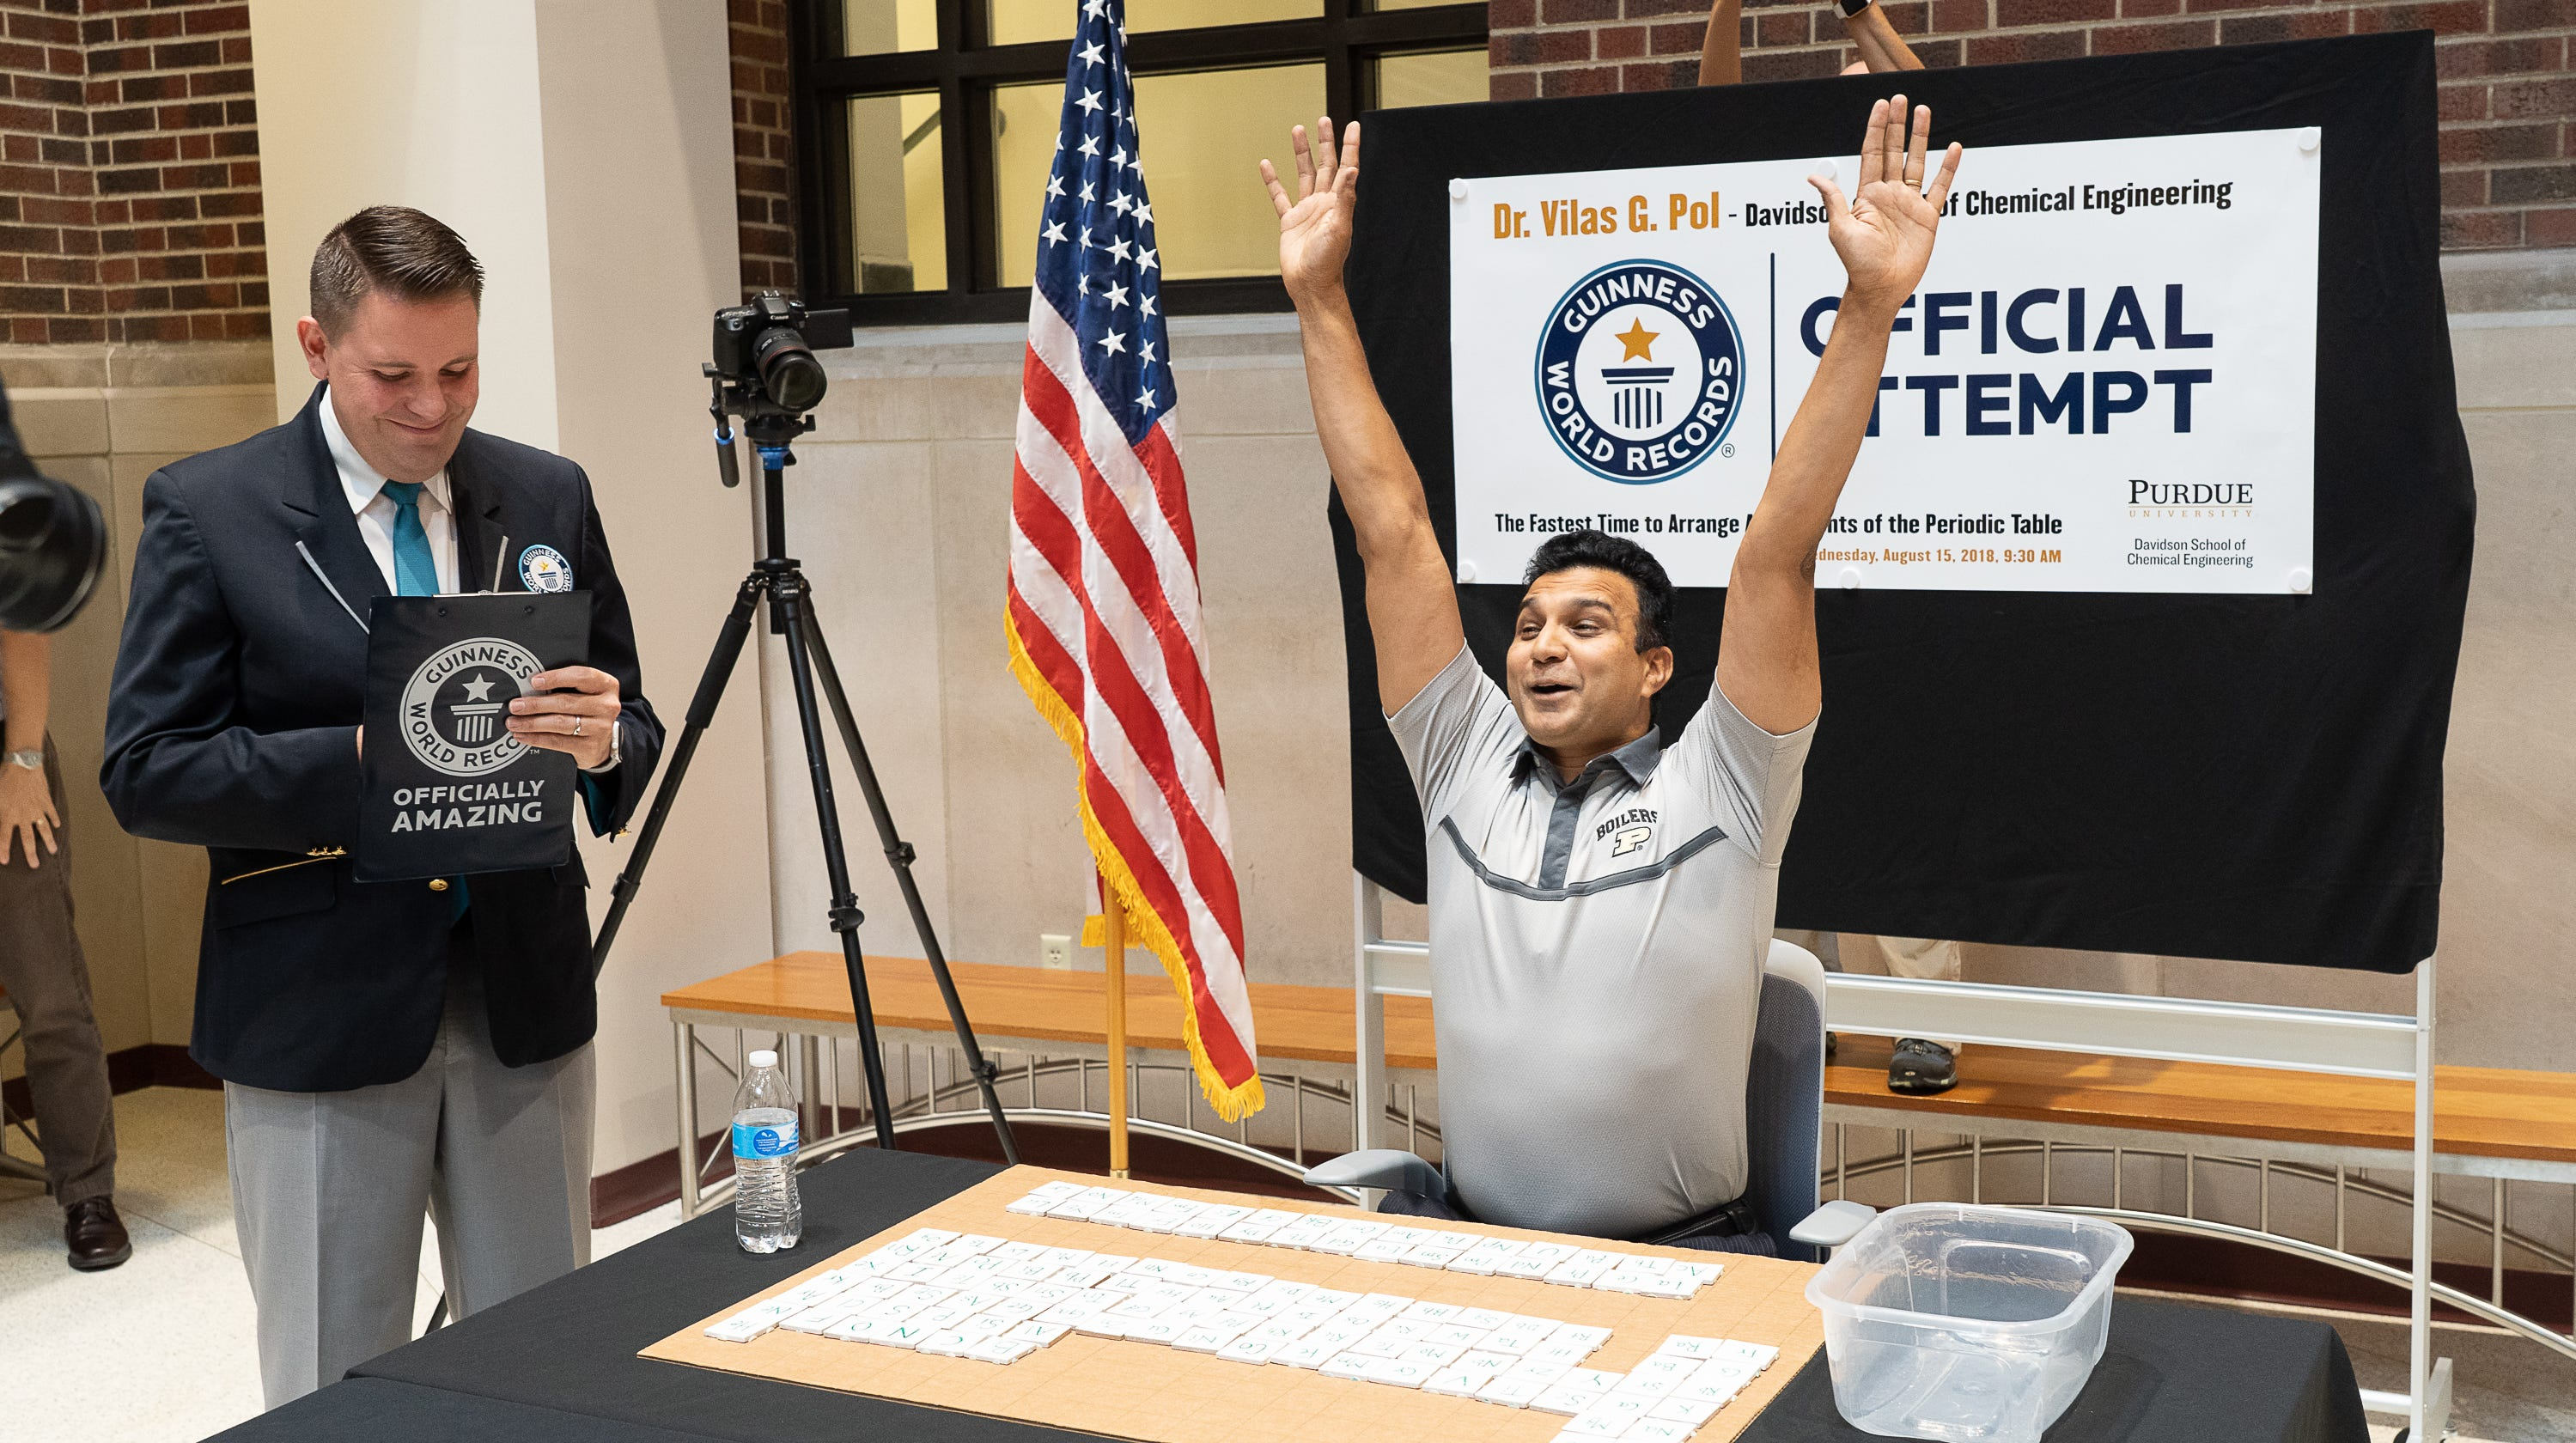 Purdue professor sets world record for fastest arrangement of the periodic table of elements